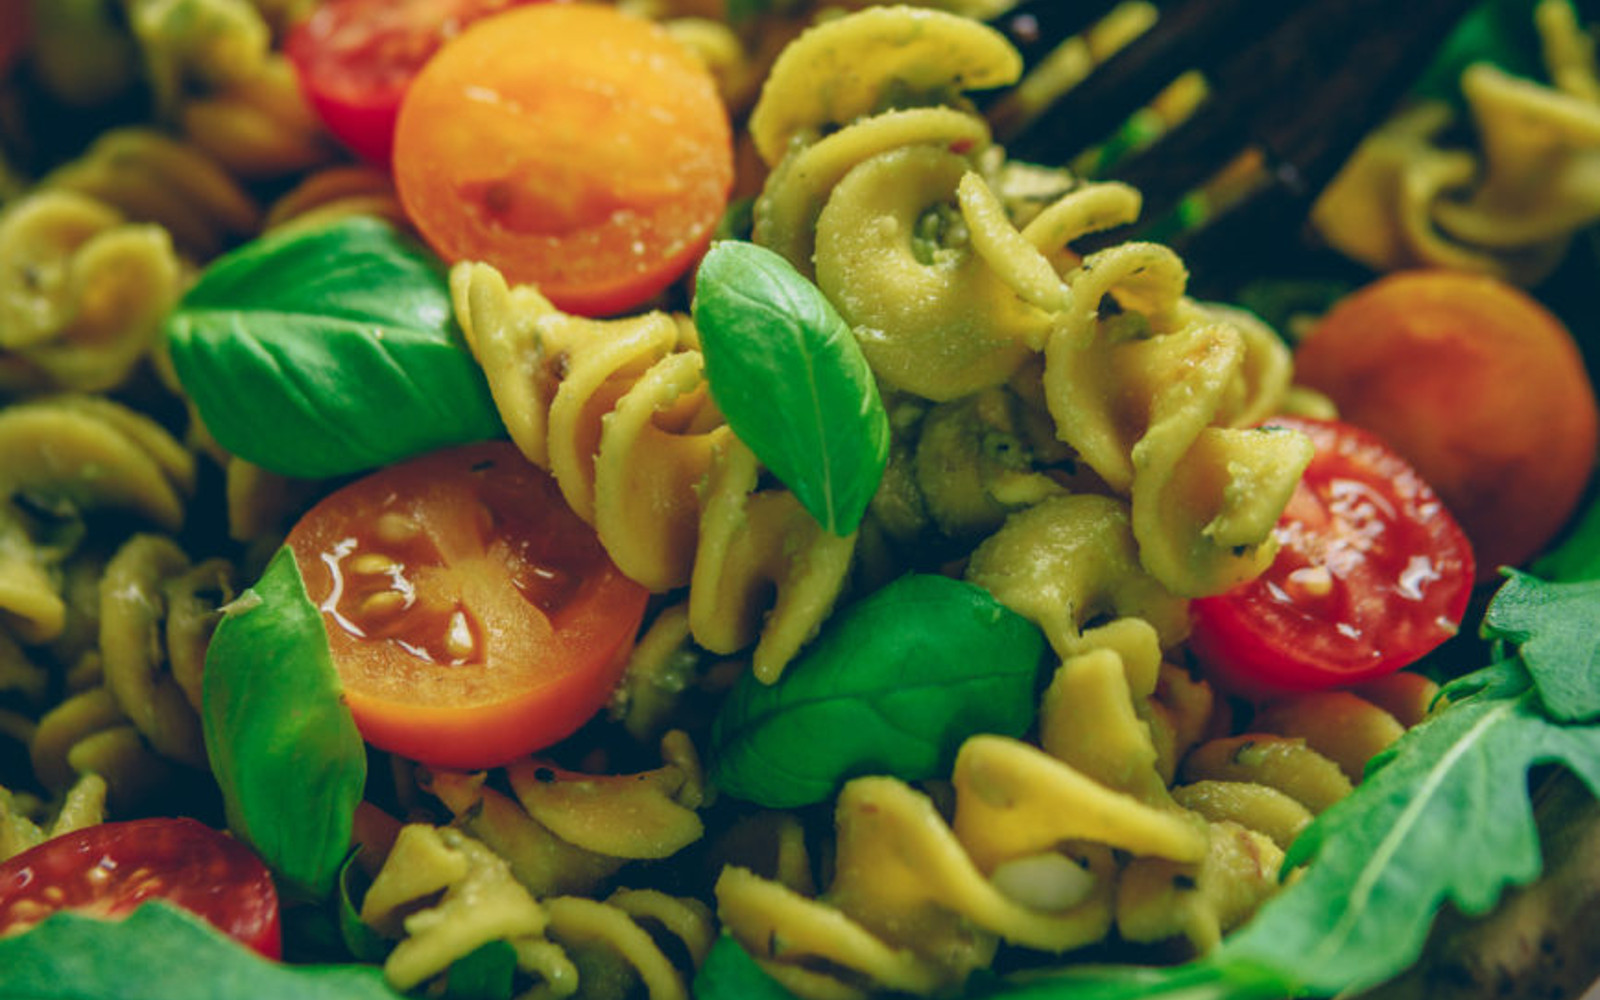 Vegan, Gluten-Free, Oil-Free Avocado Pesto Pasta with arugula and cherry tomatoes